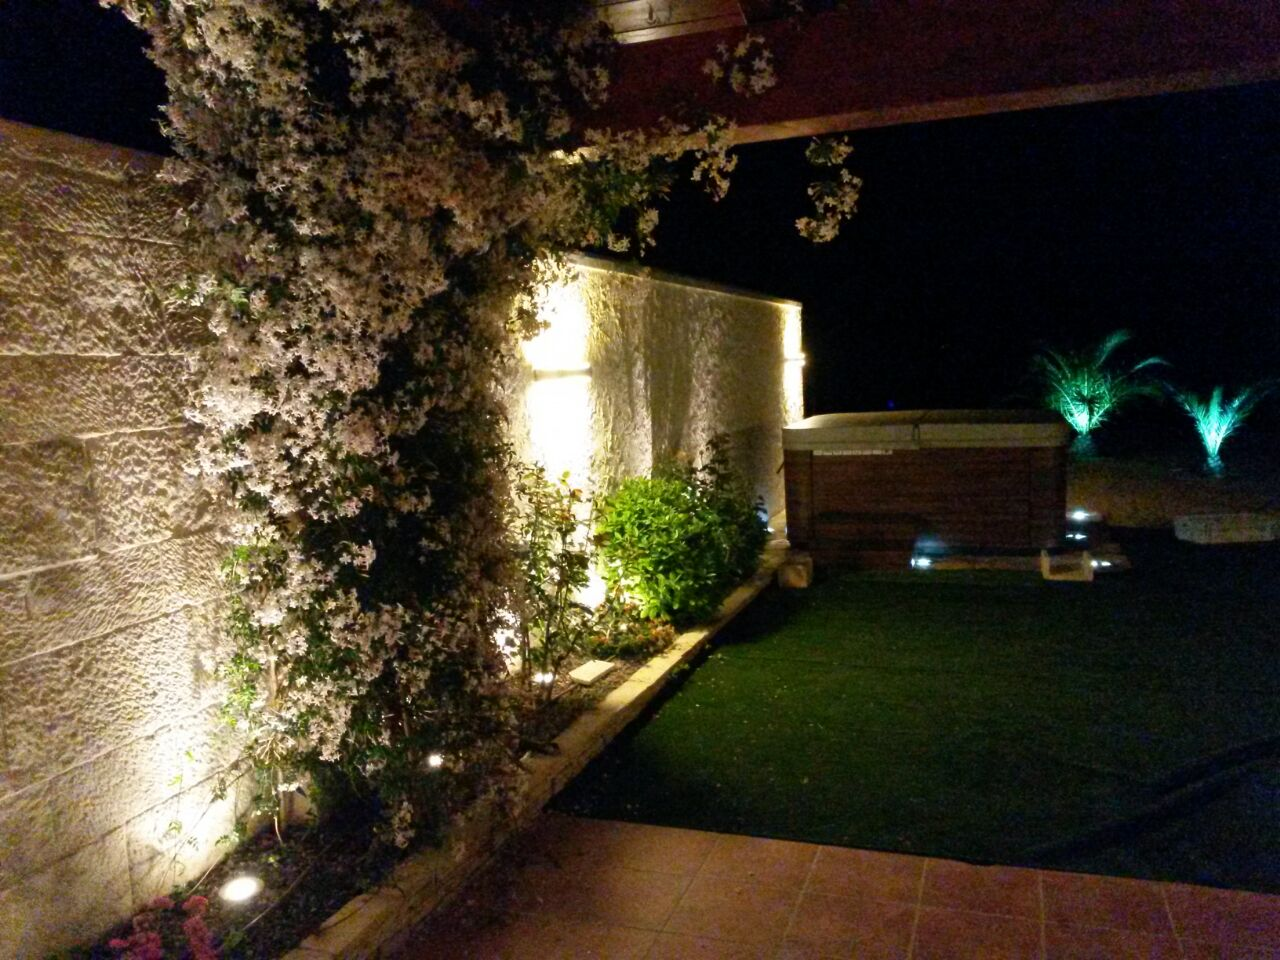 Iluminaci n insbar for Luces jardin